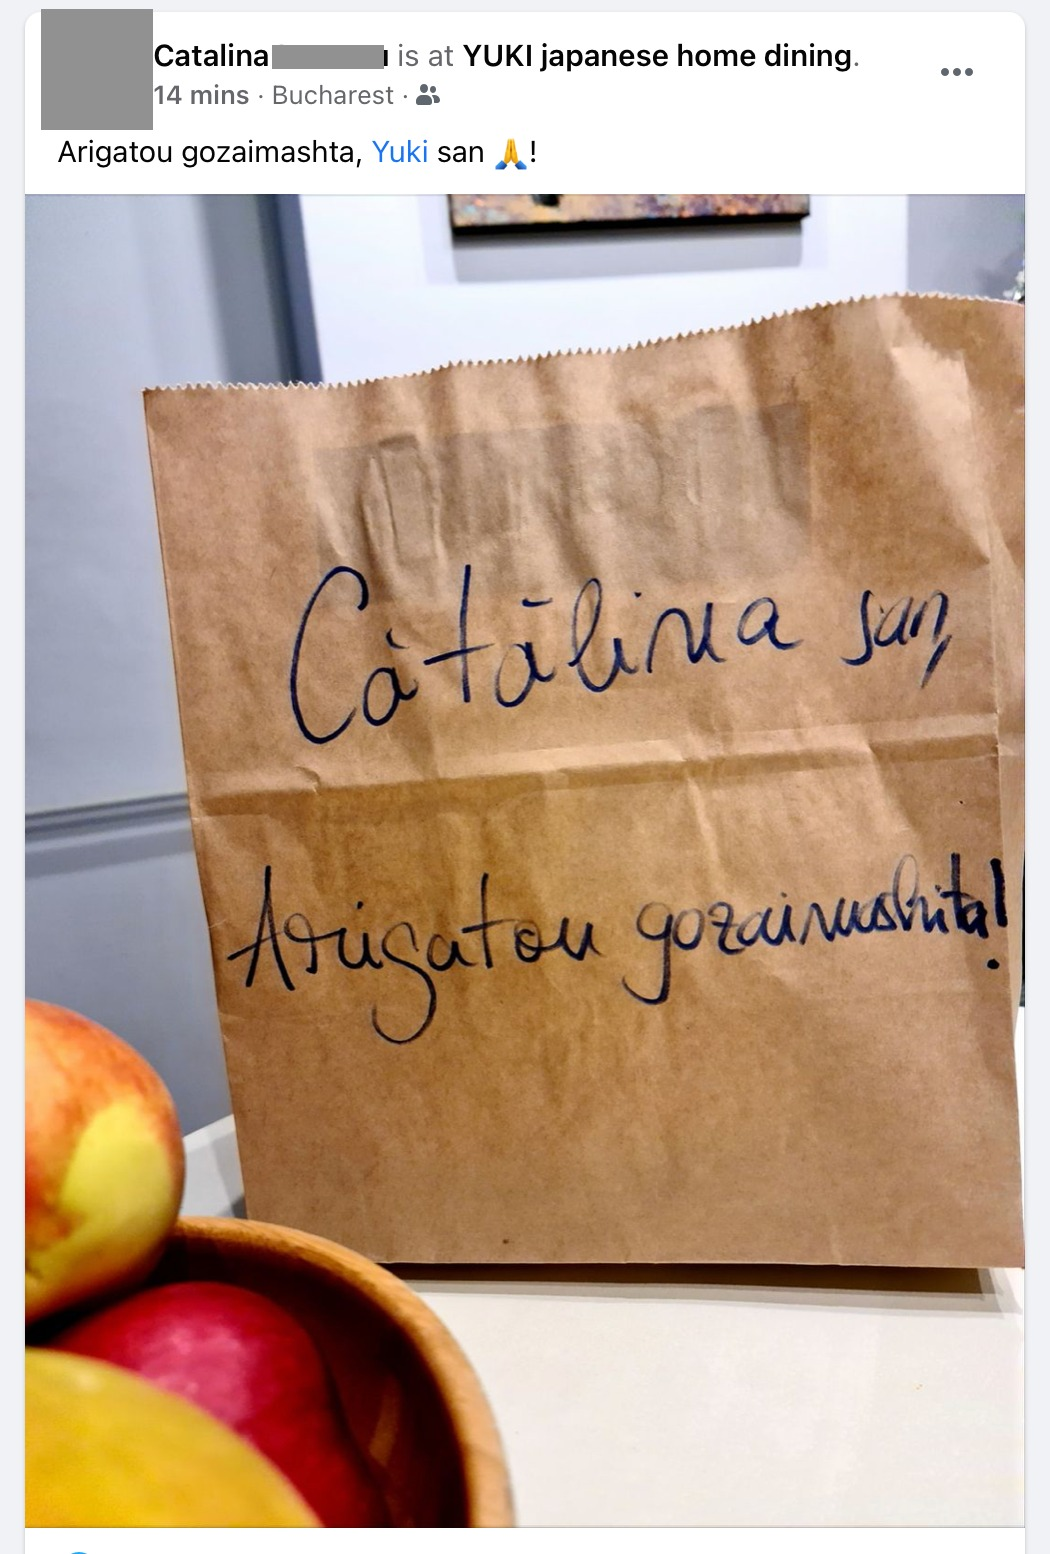 why are restaurants successful: personal touch